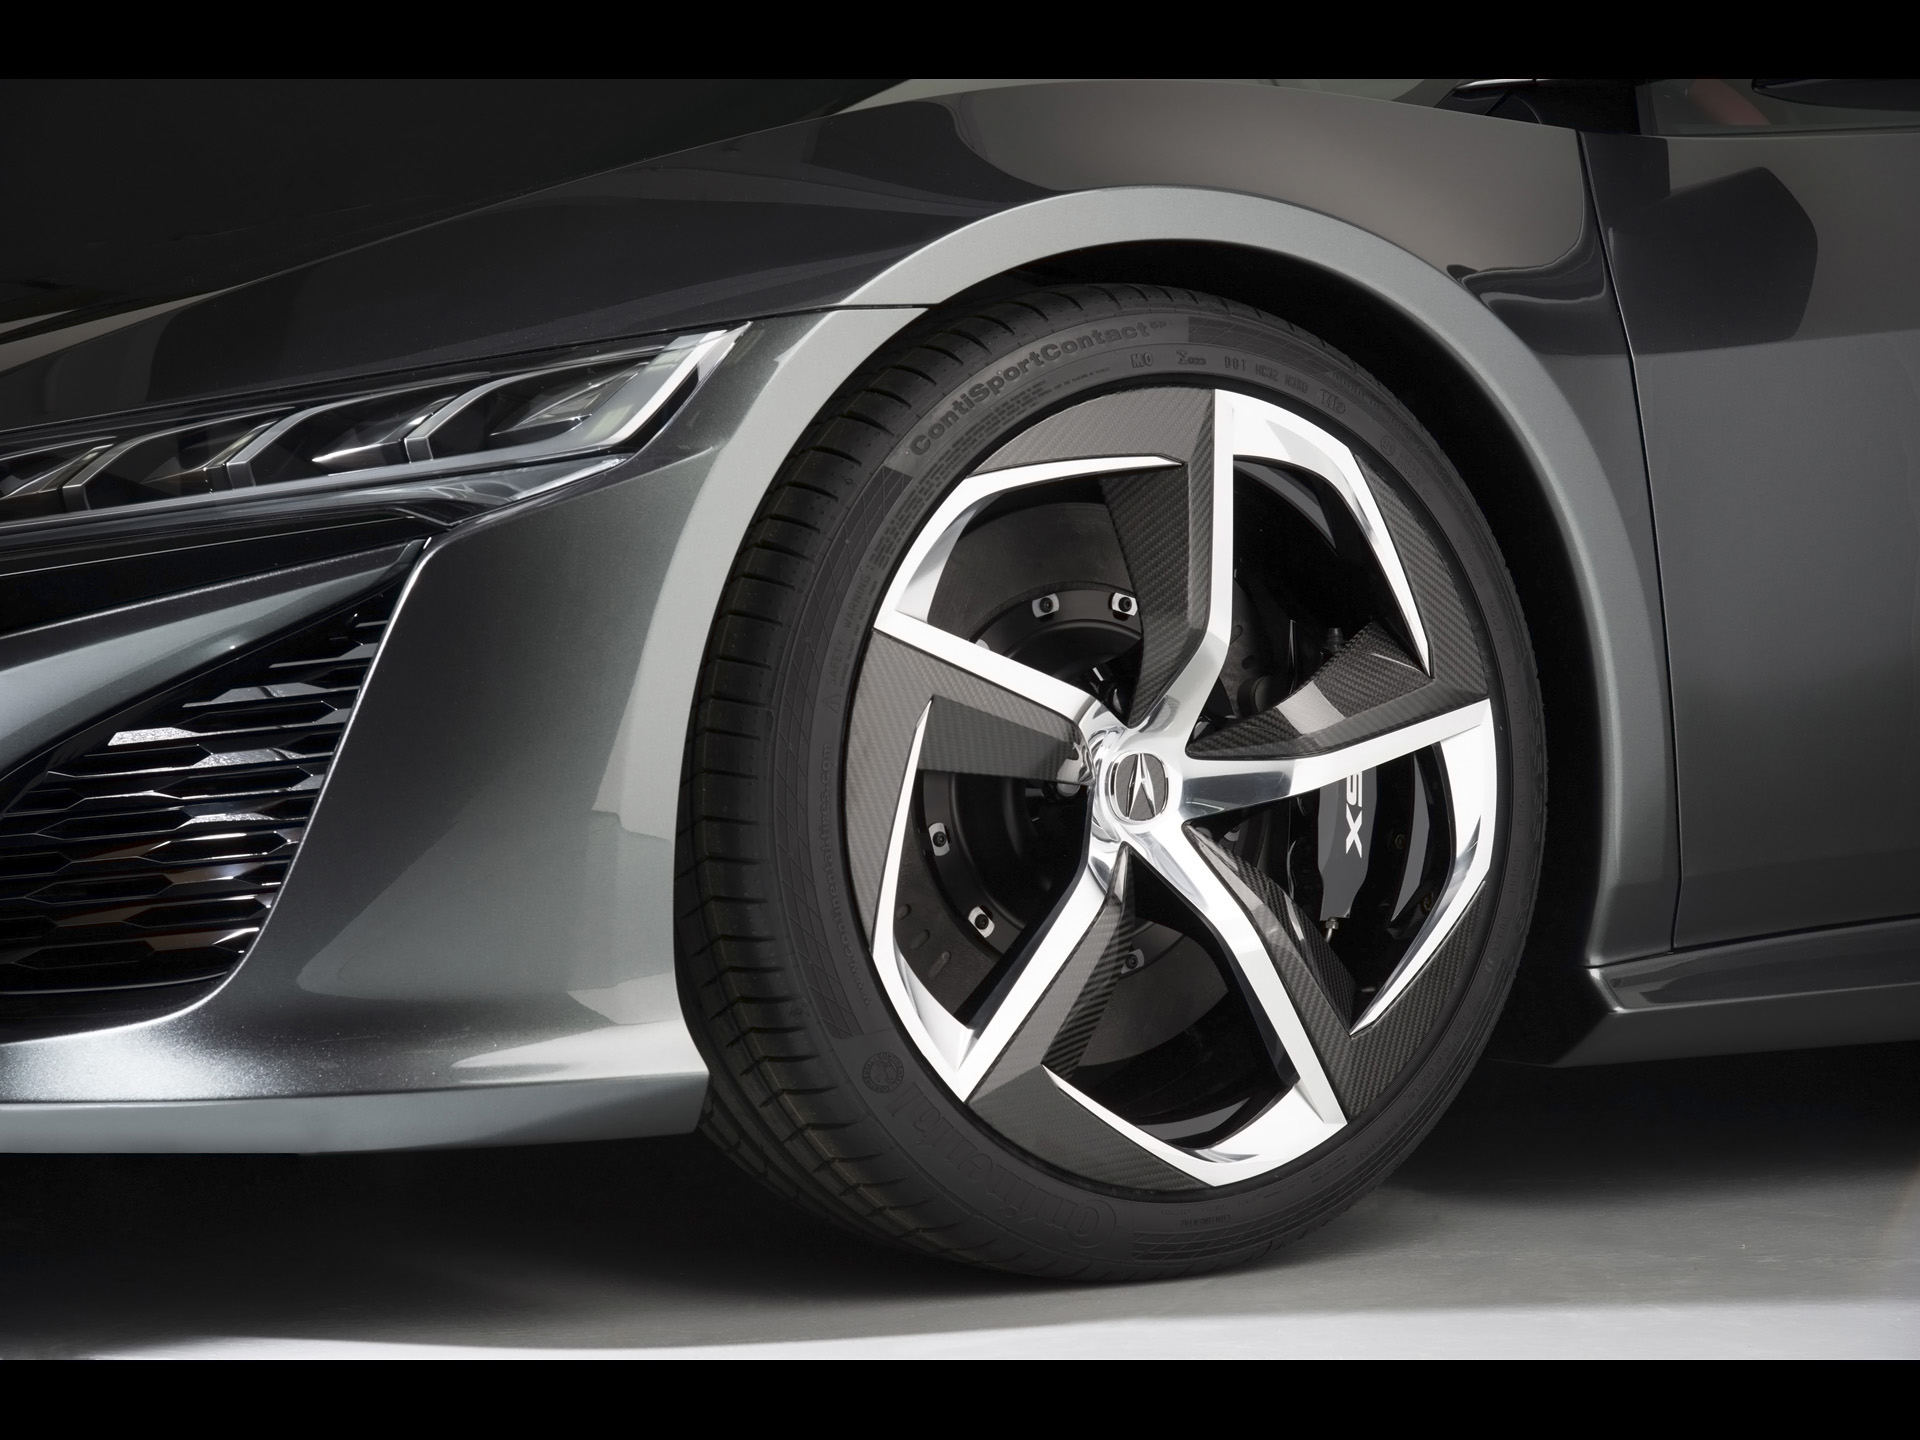 2013 Acura Nsx Concept Wheel Wallpapers 2013 Acura Nsx